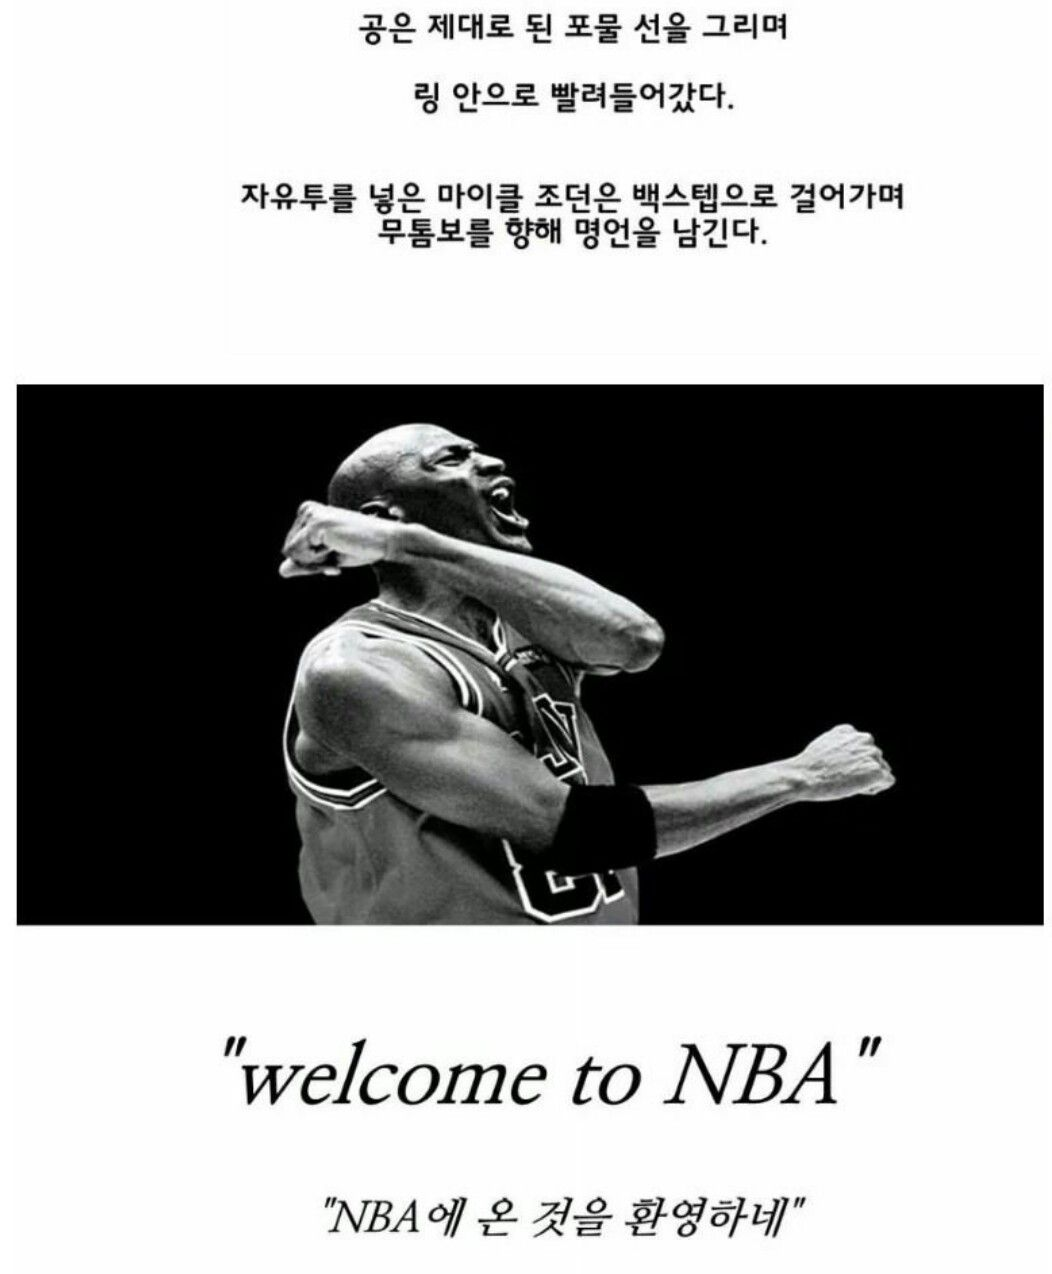 Welcome to NBA